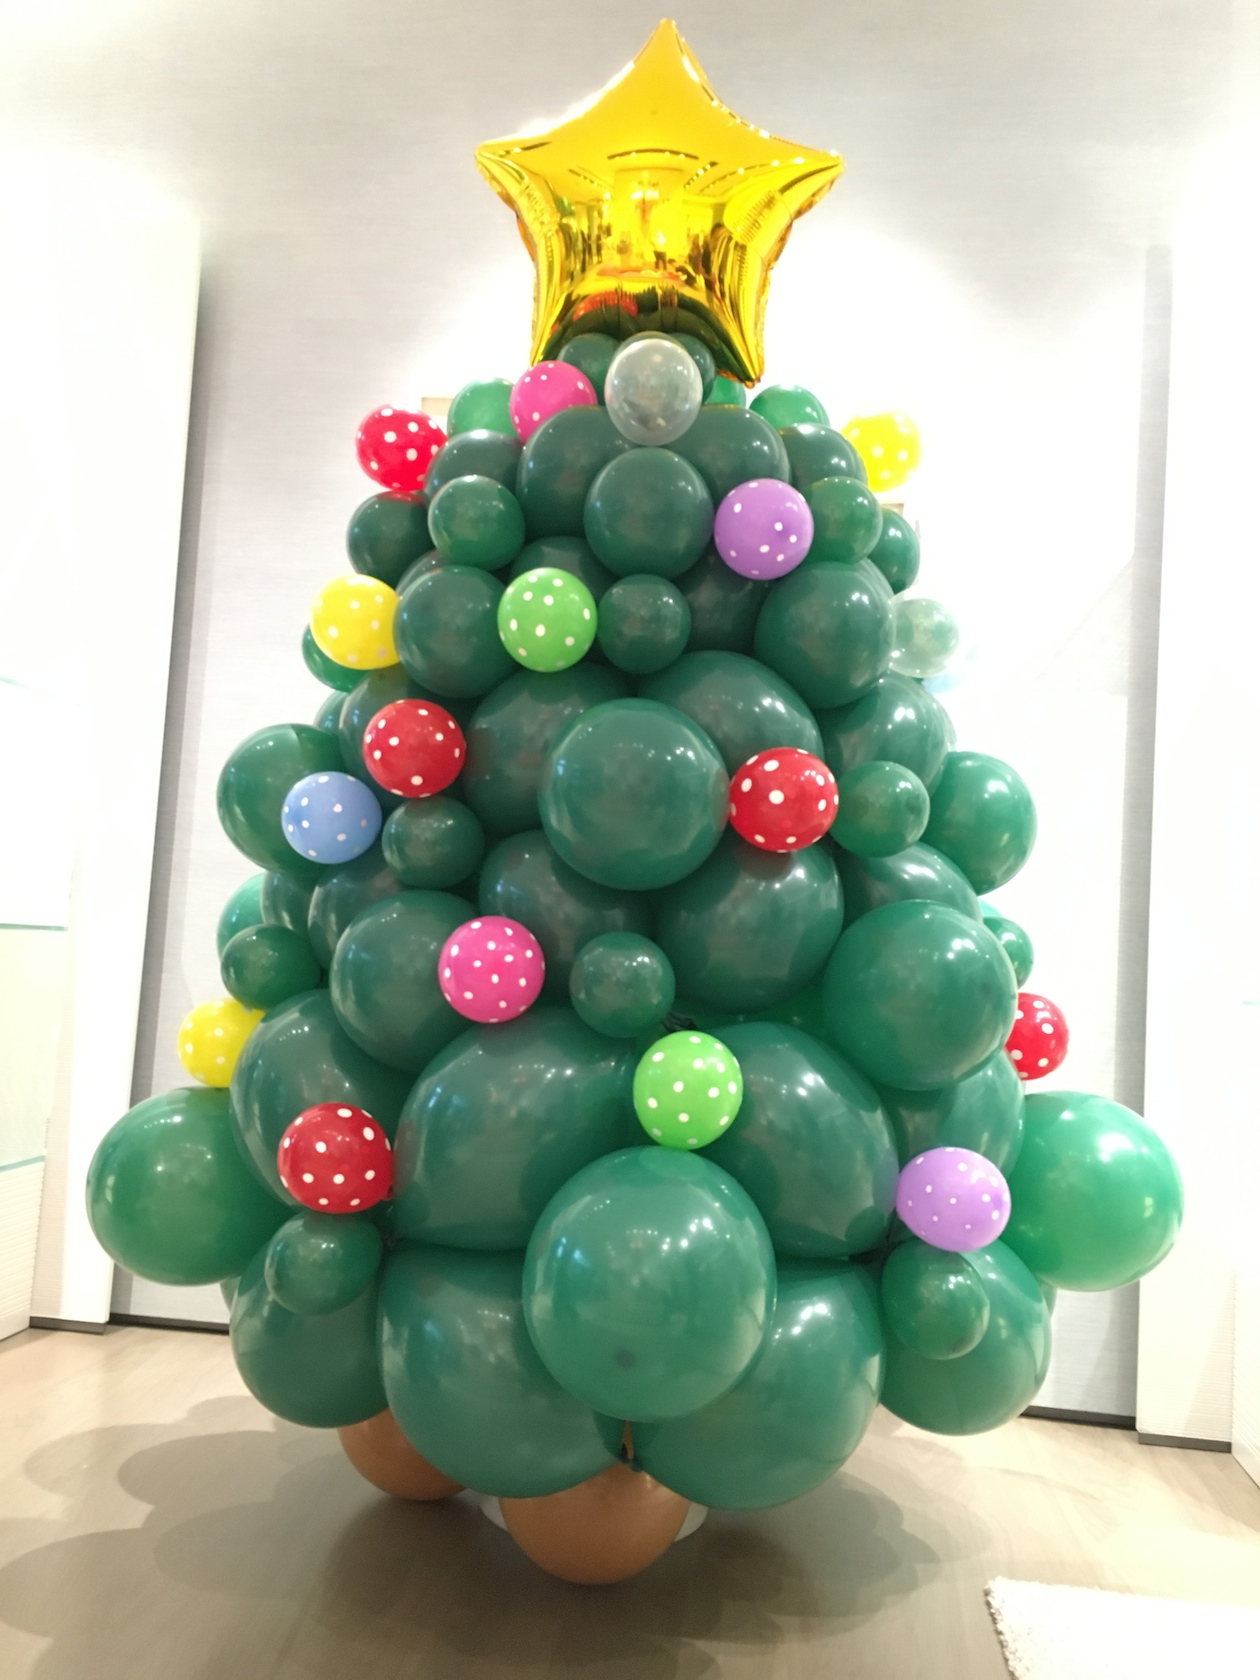 Christmas Tree Balloon.Balloon Christmas Tree Decorations That Balloons